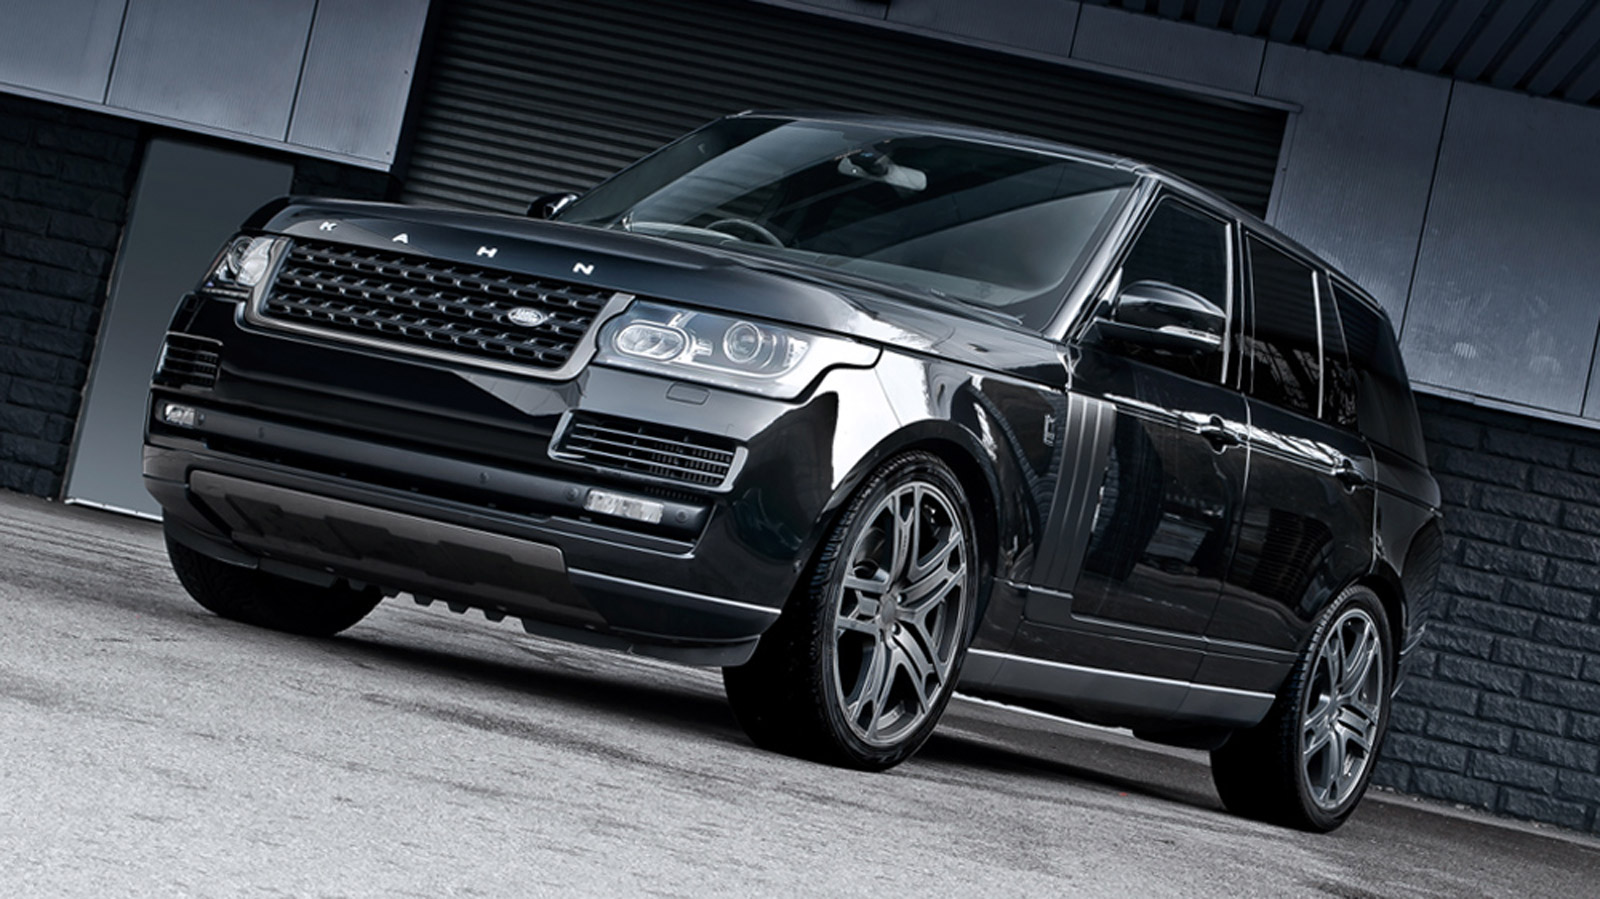 https://images.hgmsites.net/hug/2013-land-rover-range-rover-by-a-kahn-design_100419191_h.jpg